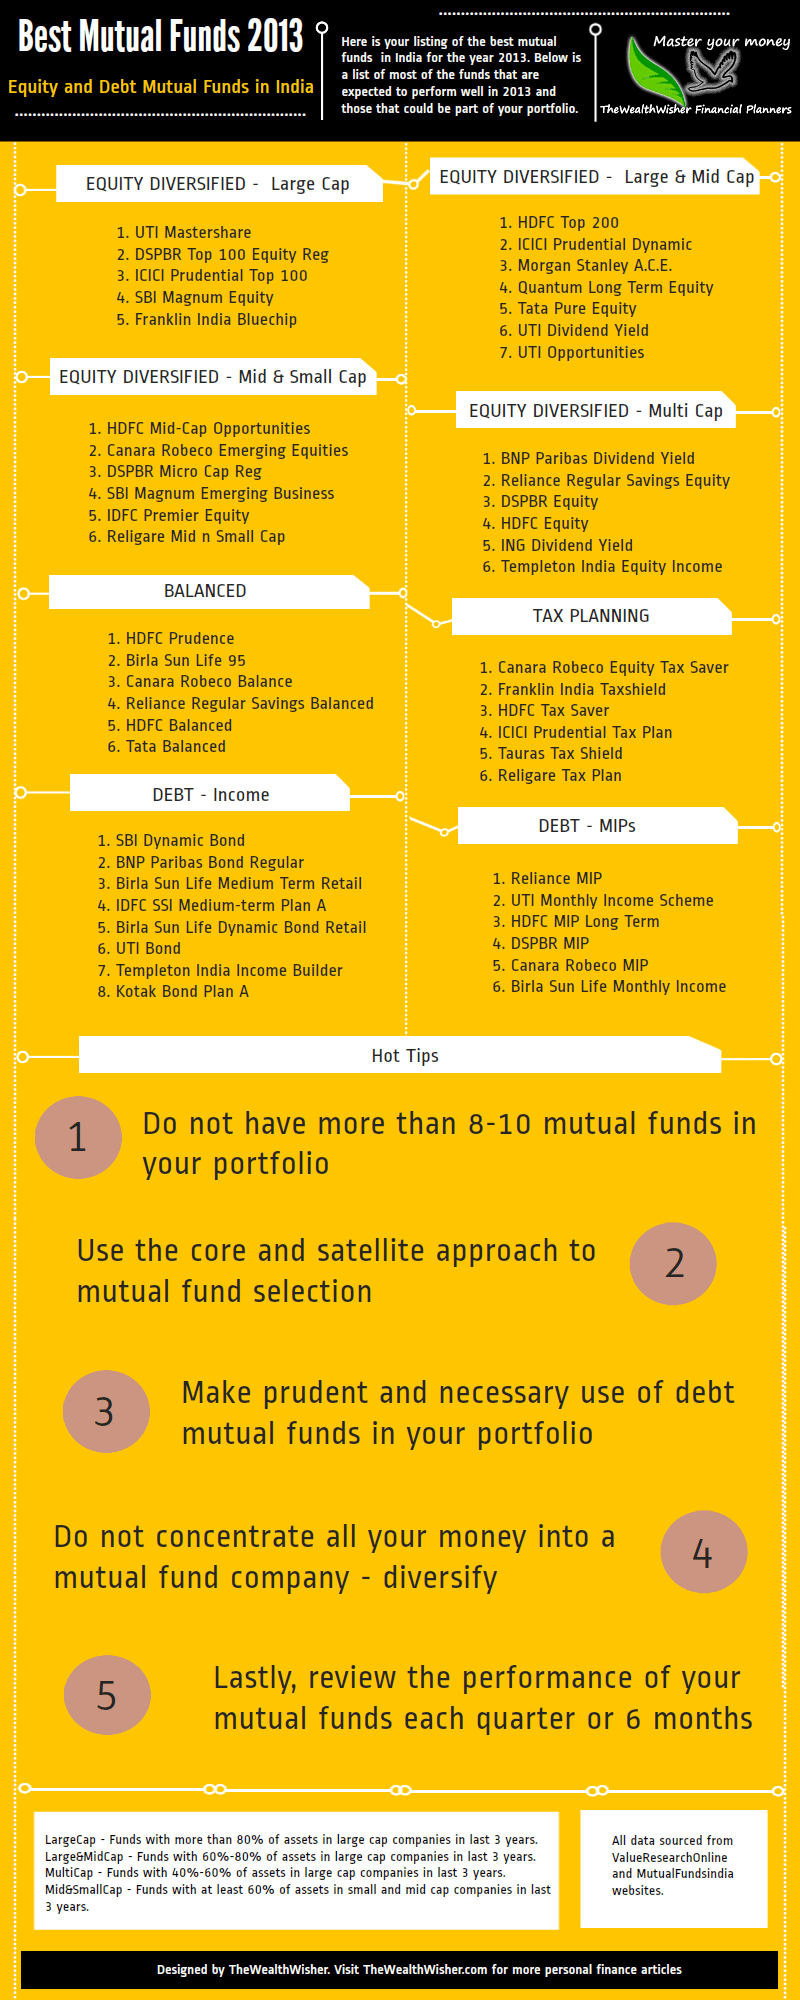 Best Mutual Funds to invest in 2013 in India